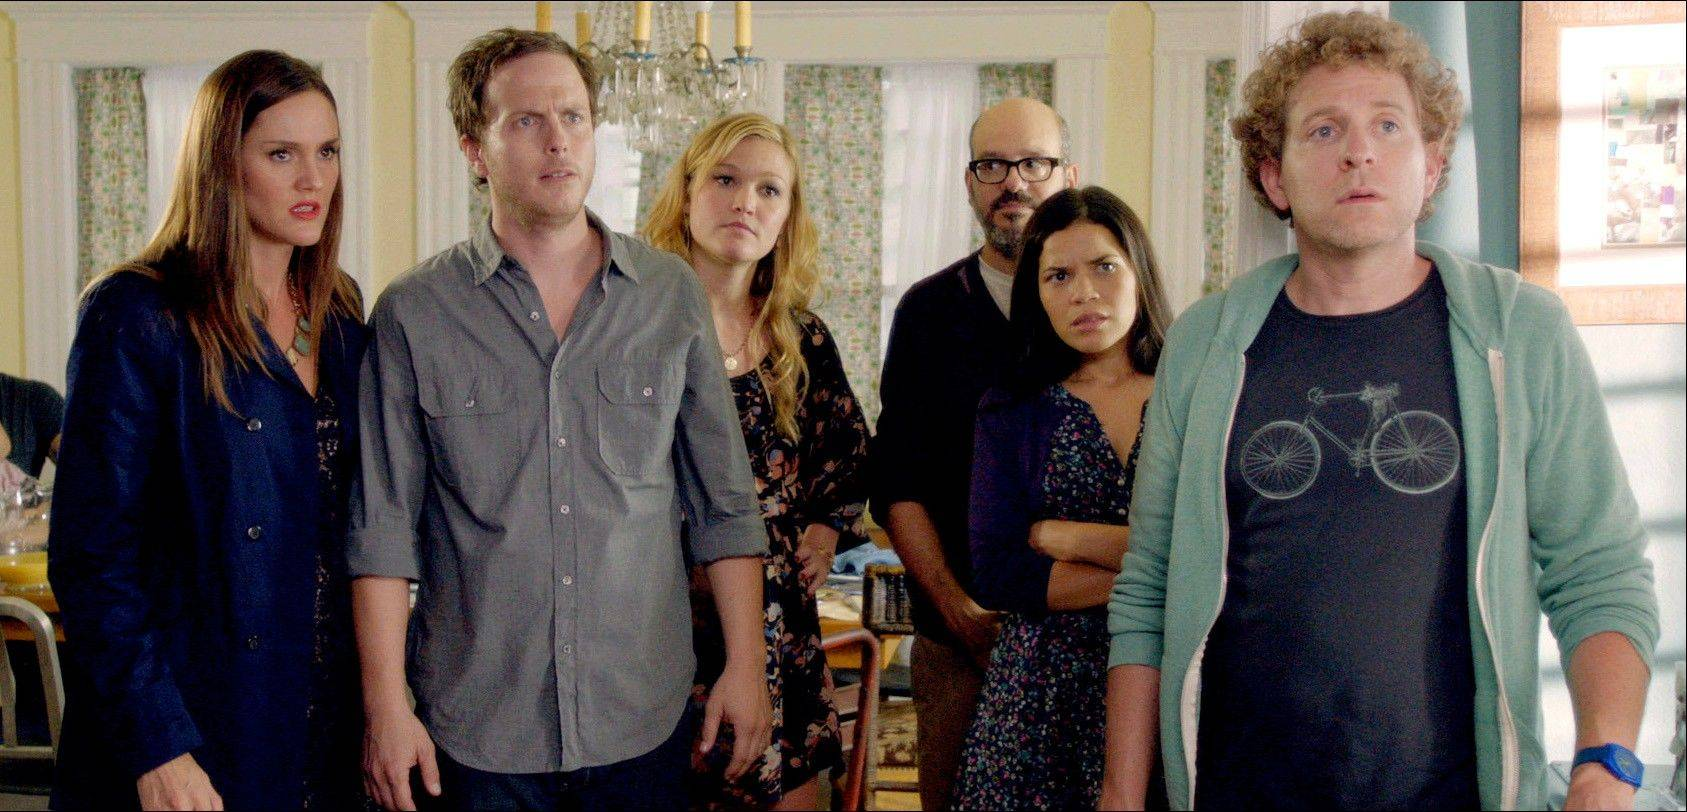 Erinn Hayes, left, Blaise Miller, Julia Stiles, David Cross, America Ferrera and Jeff Grace in a scene from �It�s a Disaster.� This summer, a handful of films led by Seth Rogen and Evan Goldberg�s �This Is the End,� are putting a humorous twist on the well-worn genre of the world ending.